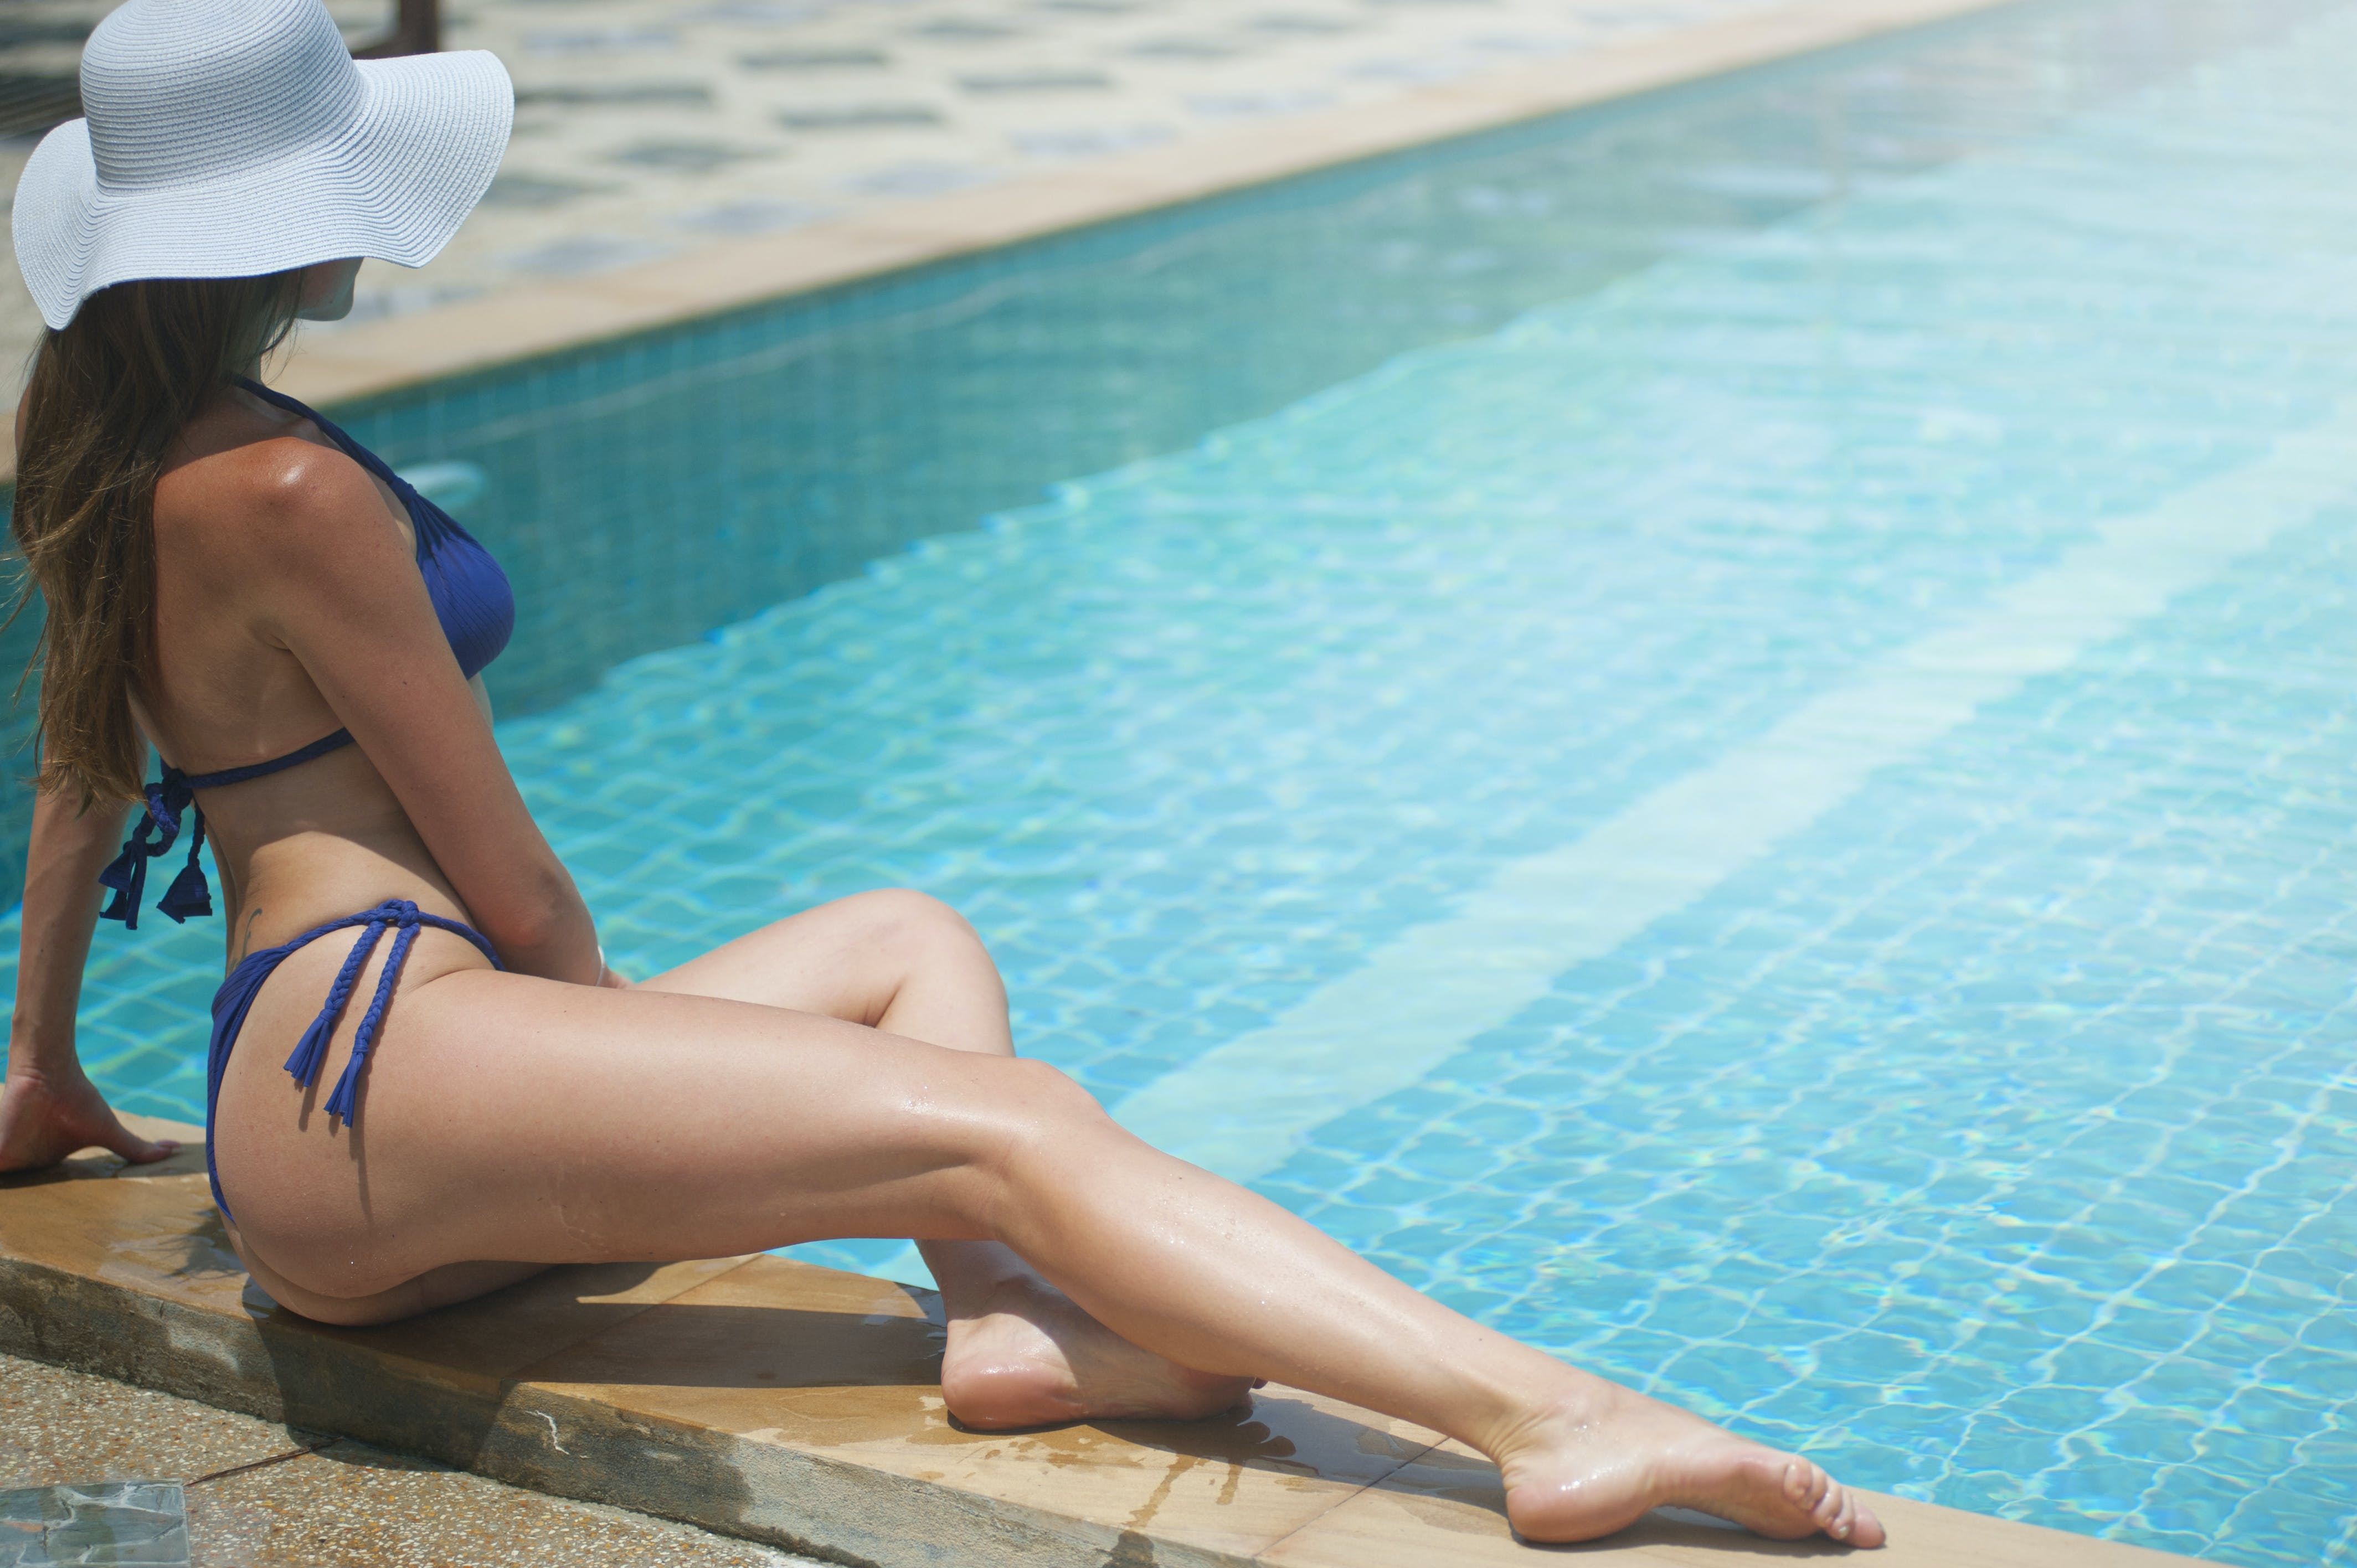 Woman Wearing Blue Bikini Set Sitting Beside Pool